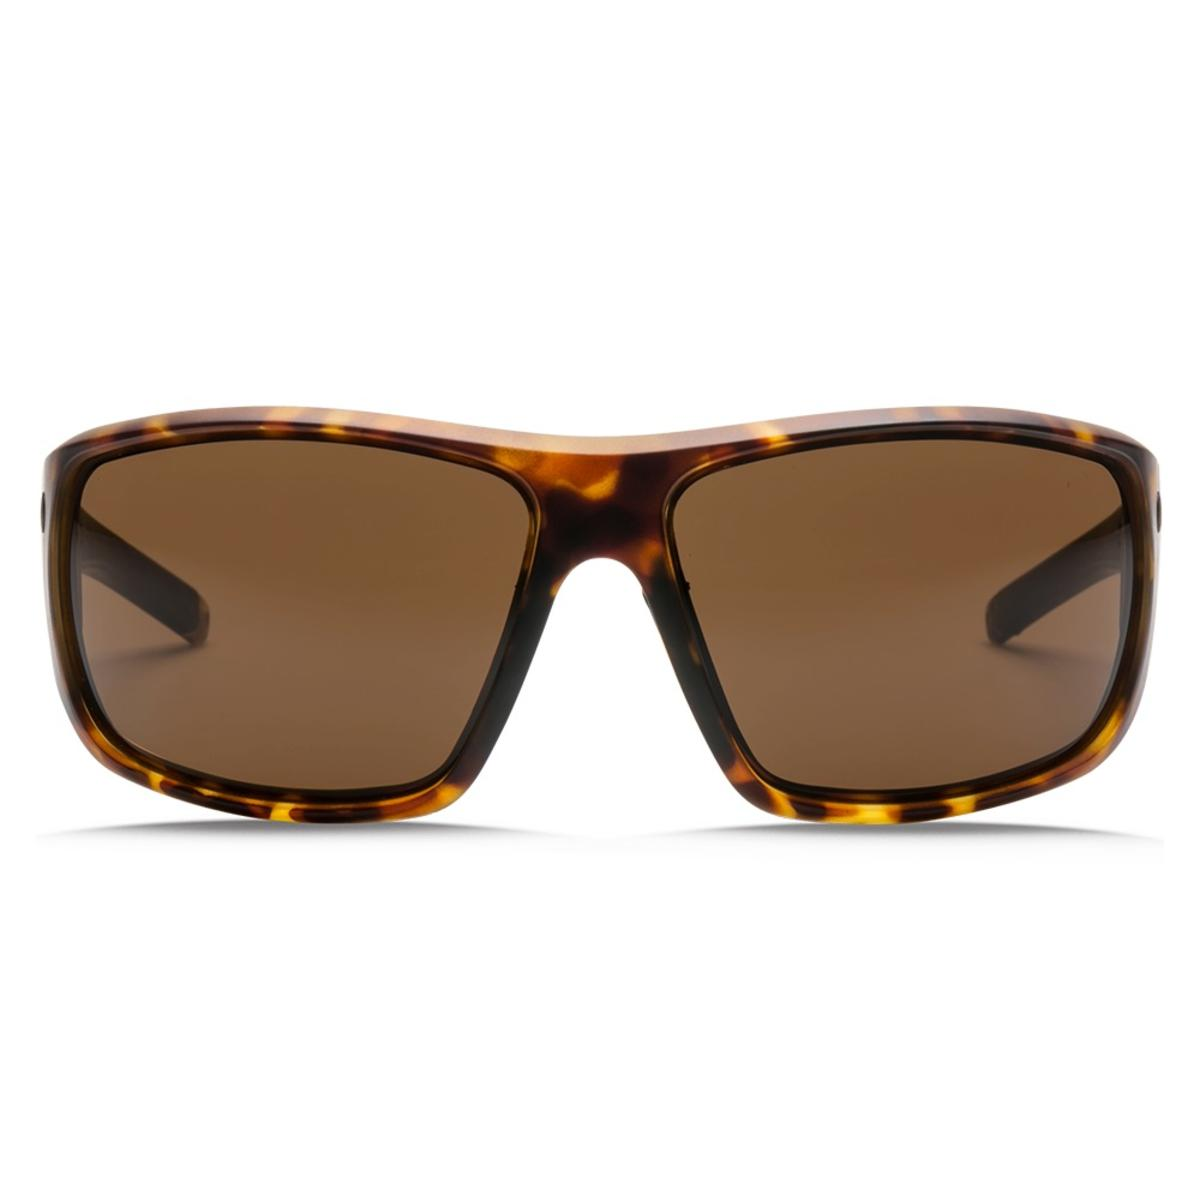 Electric Backbone S Men's Sunglasses